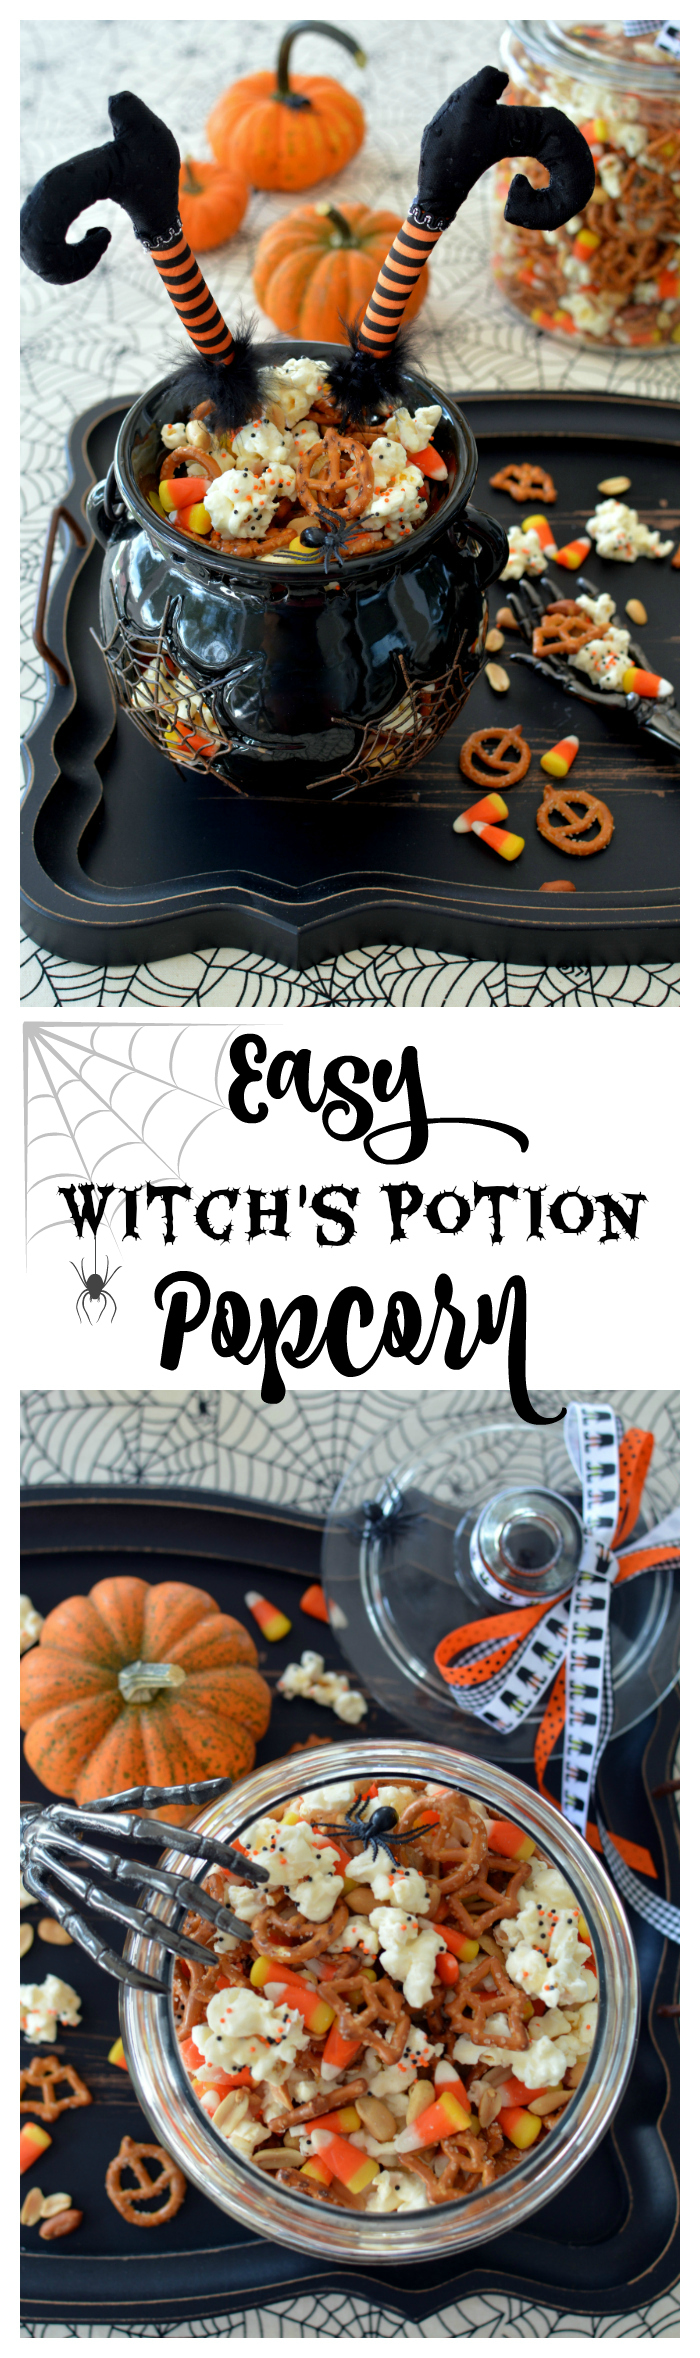 easy-witchs-potion-popcorn-mix